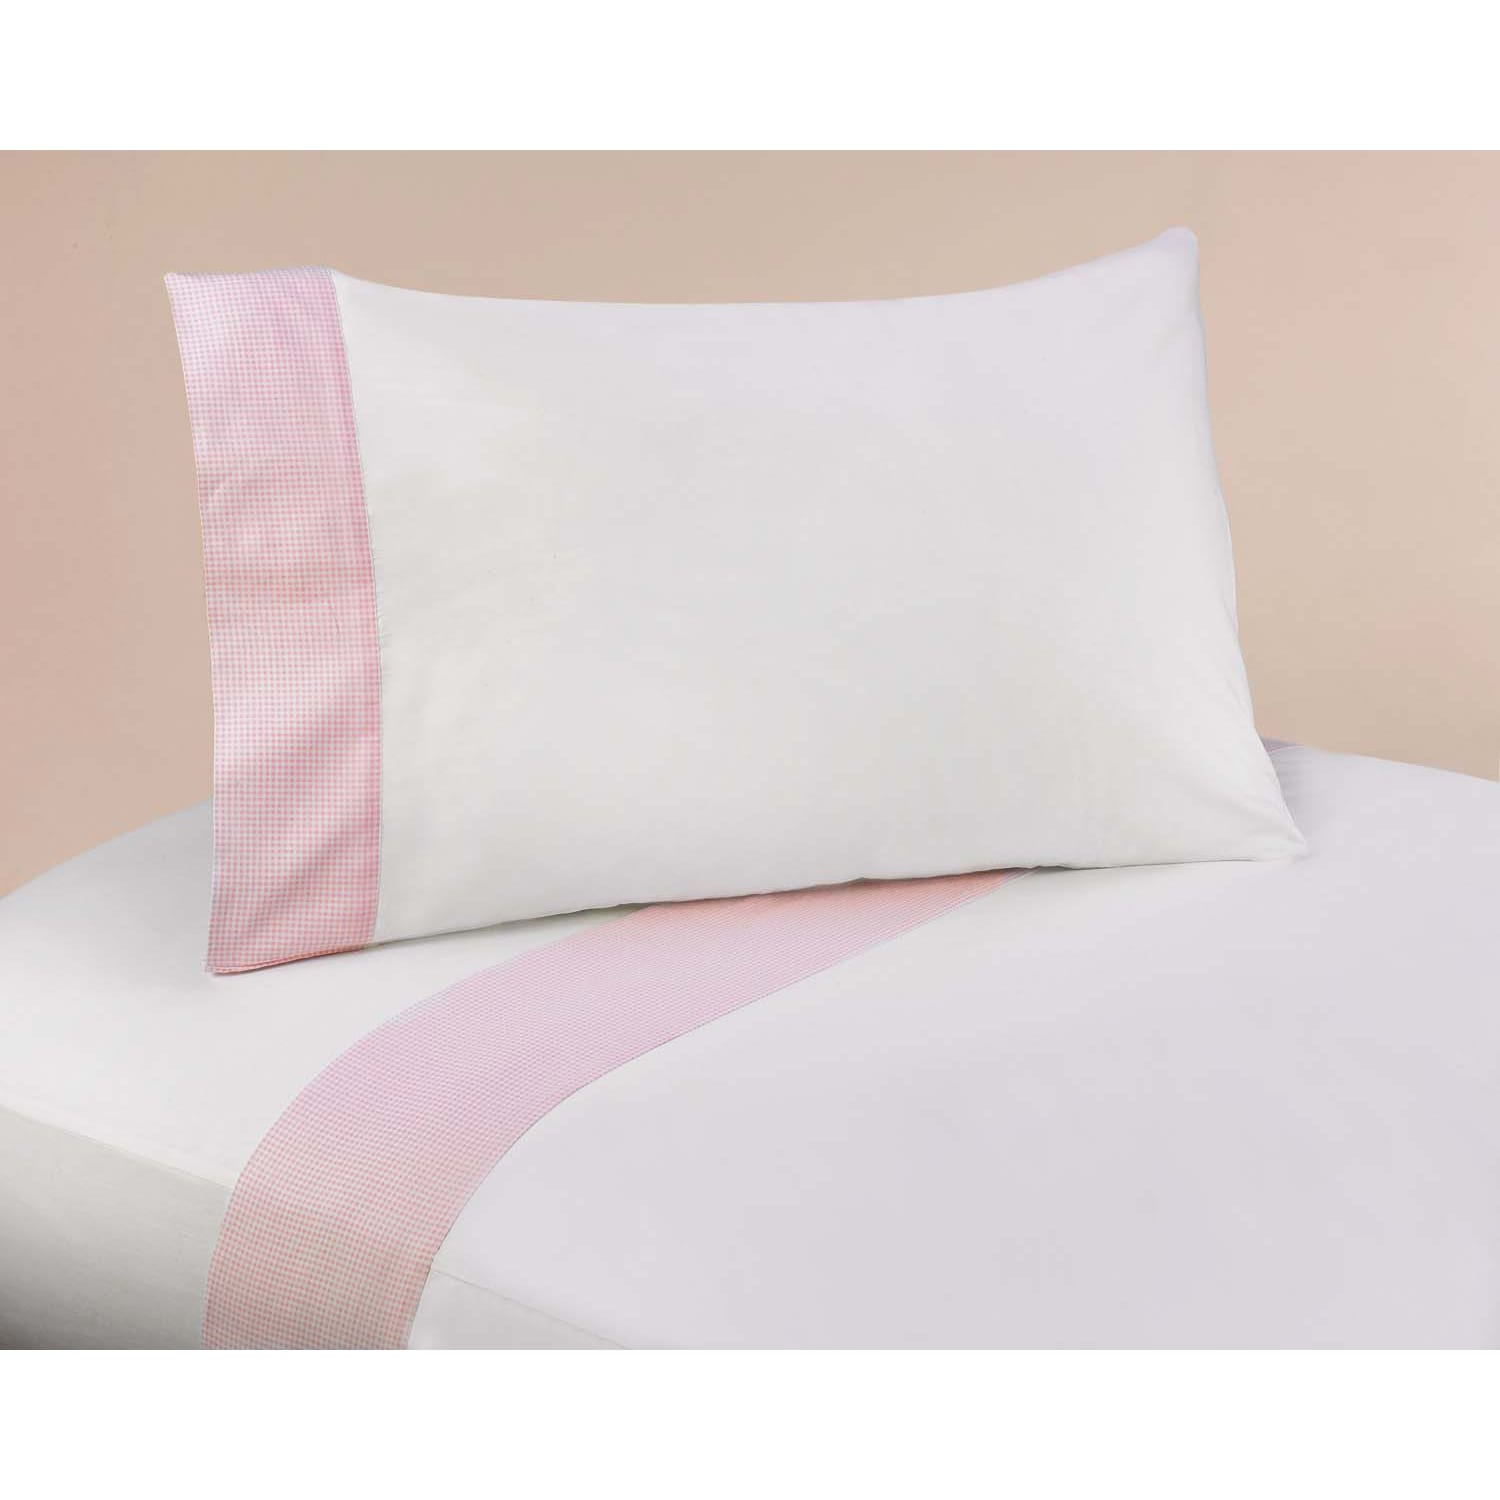 Sweet Jojo Designs 200 Thread Count Pink French Toile Bedding Collection Sheet Set Overstock 7846876